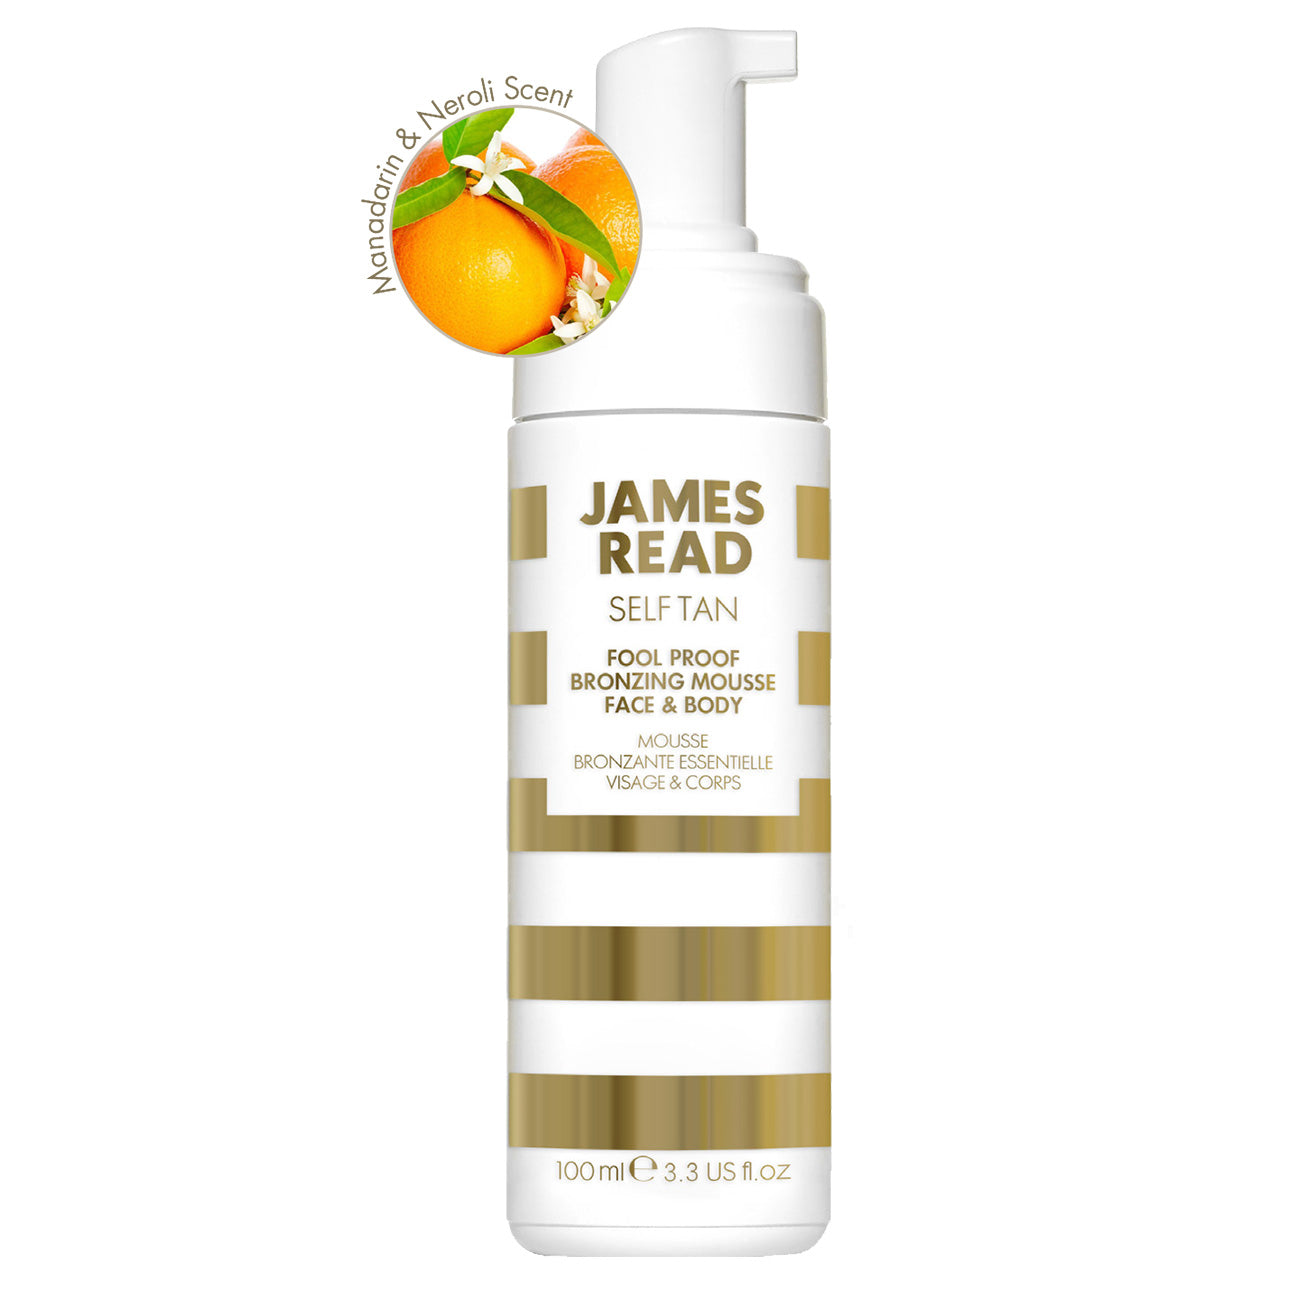 James Read Foolproof Bronzing Mousse Face and Body Light / Medium 100ml